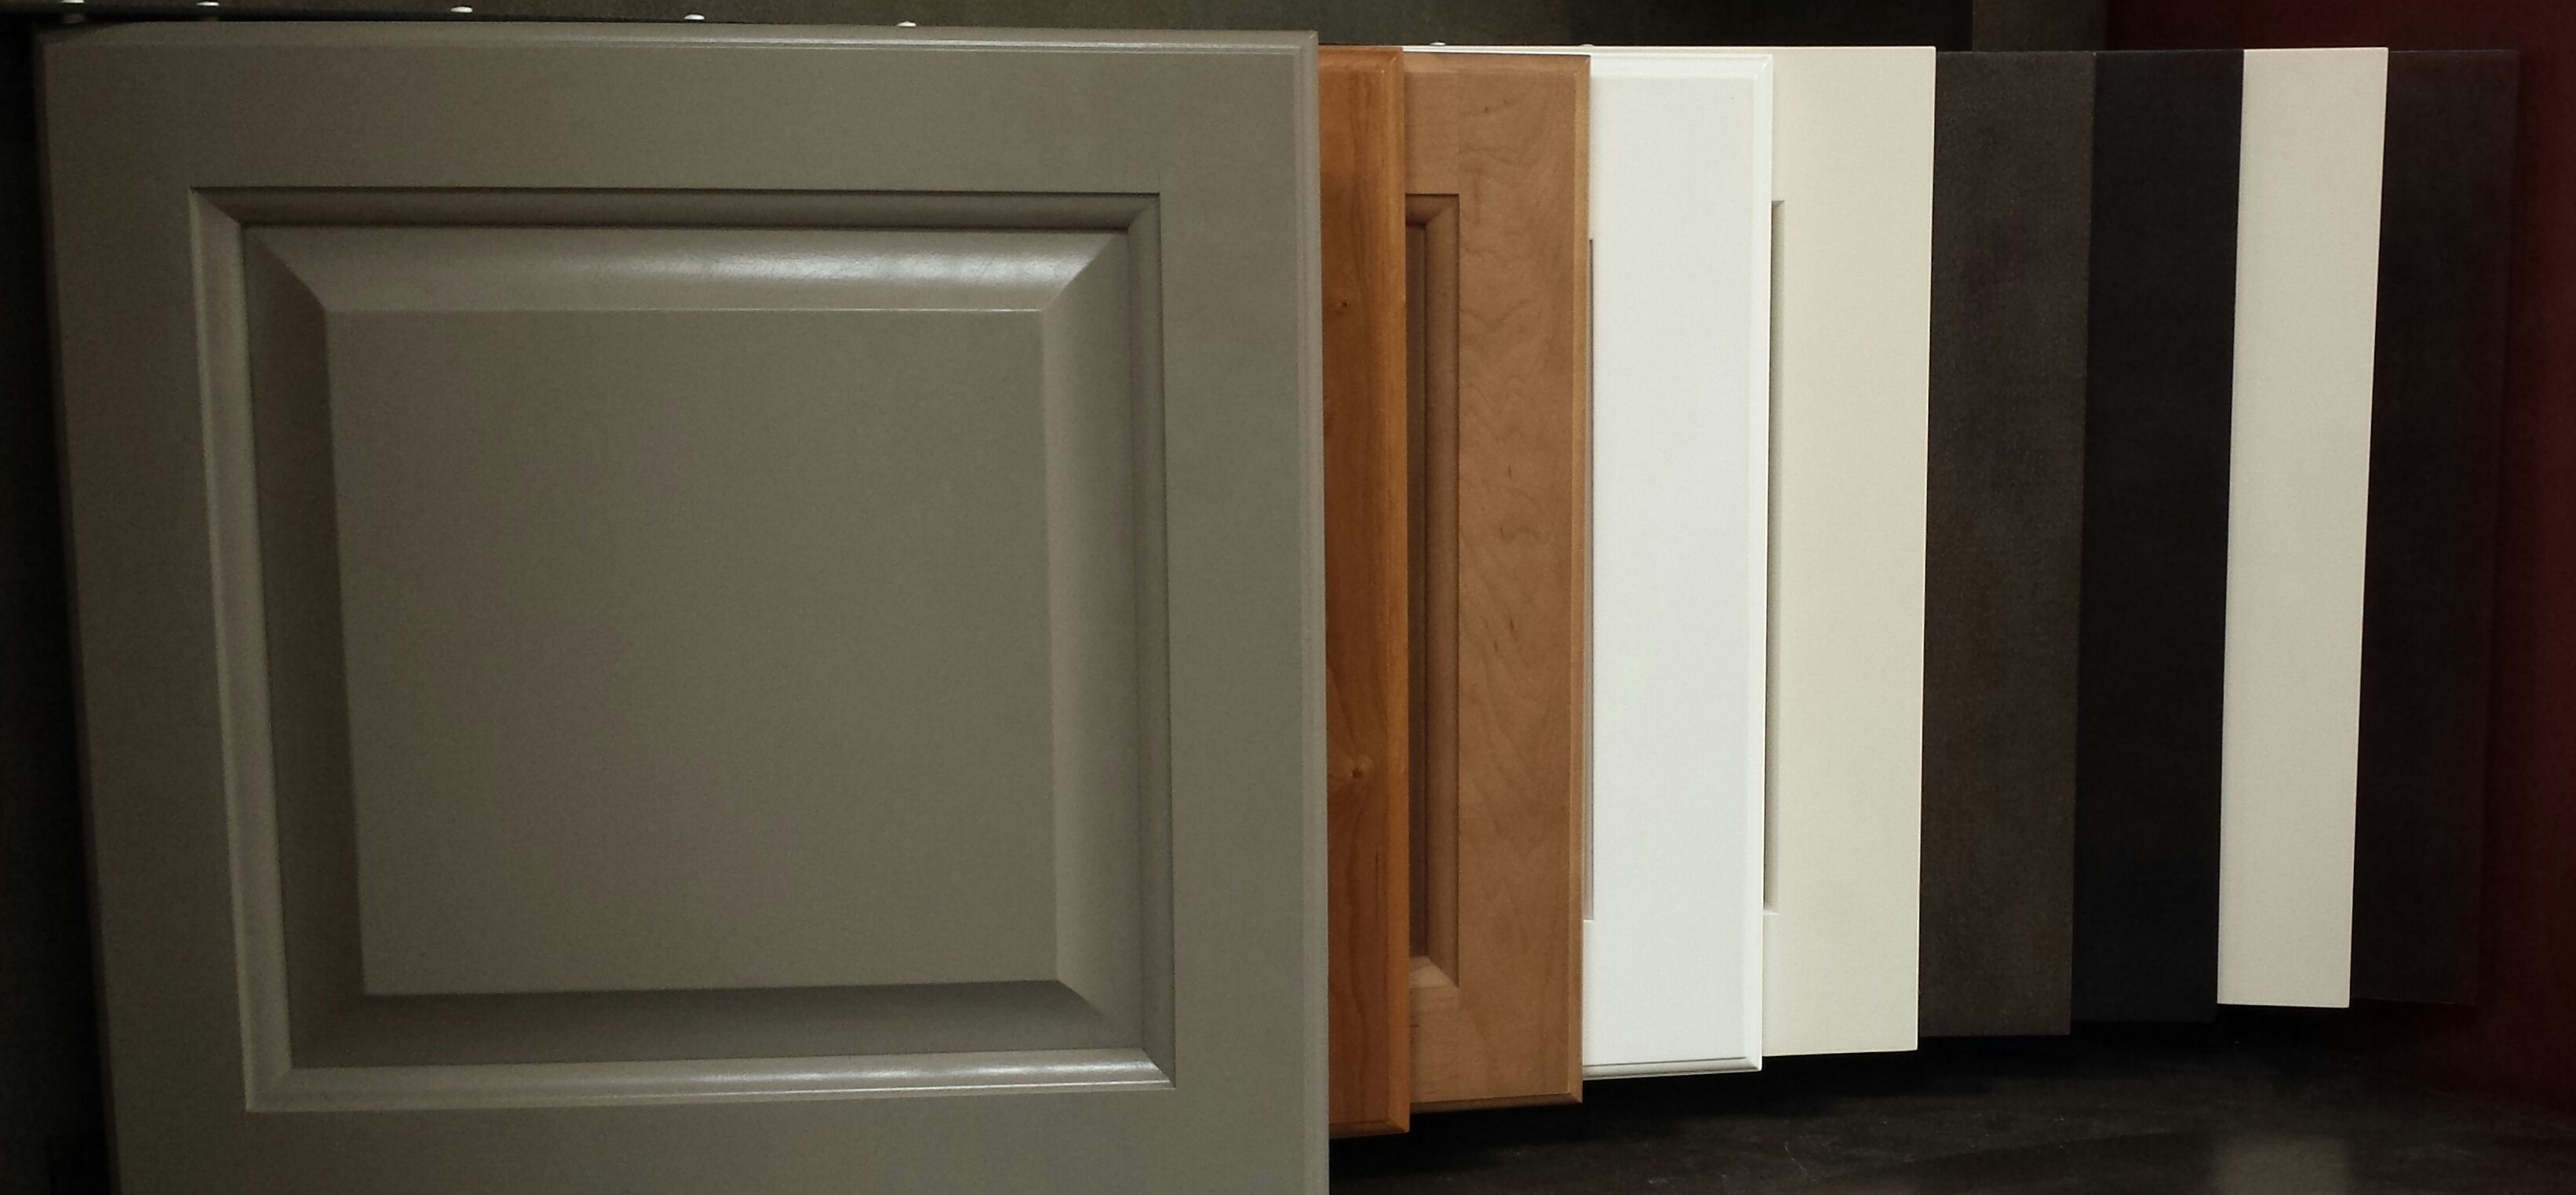 Bottom Row Display of CabCraft Cabinetry here in our showroom.